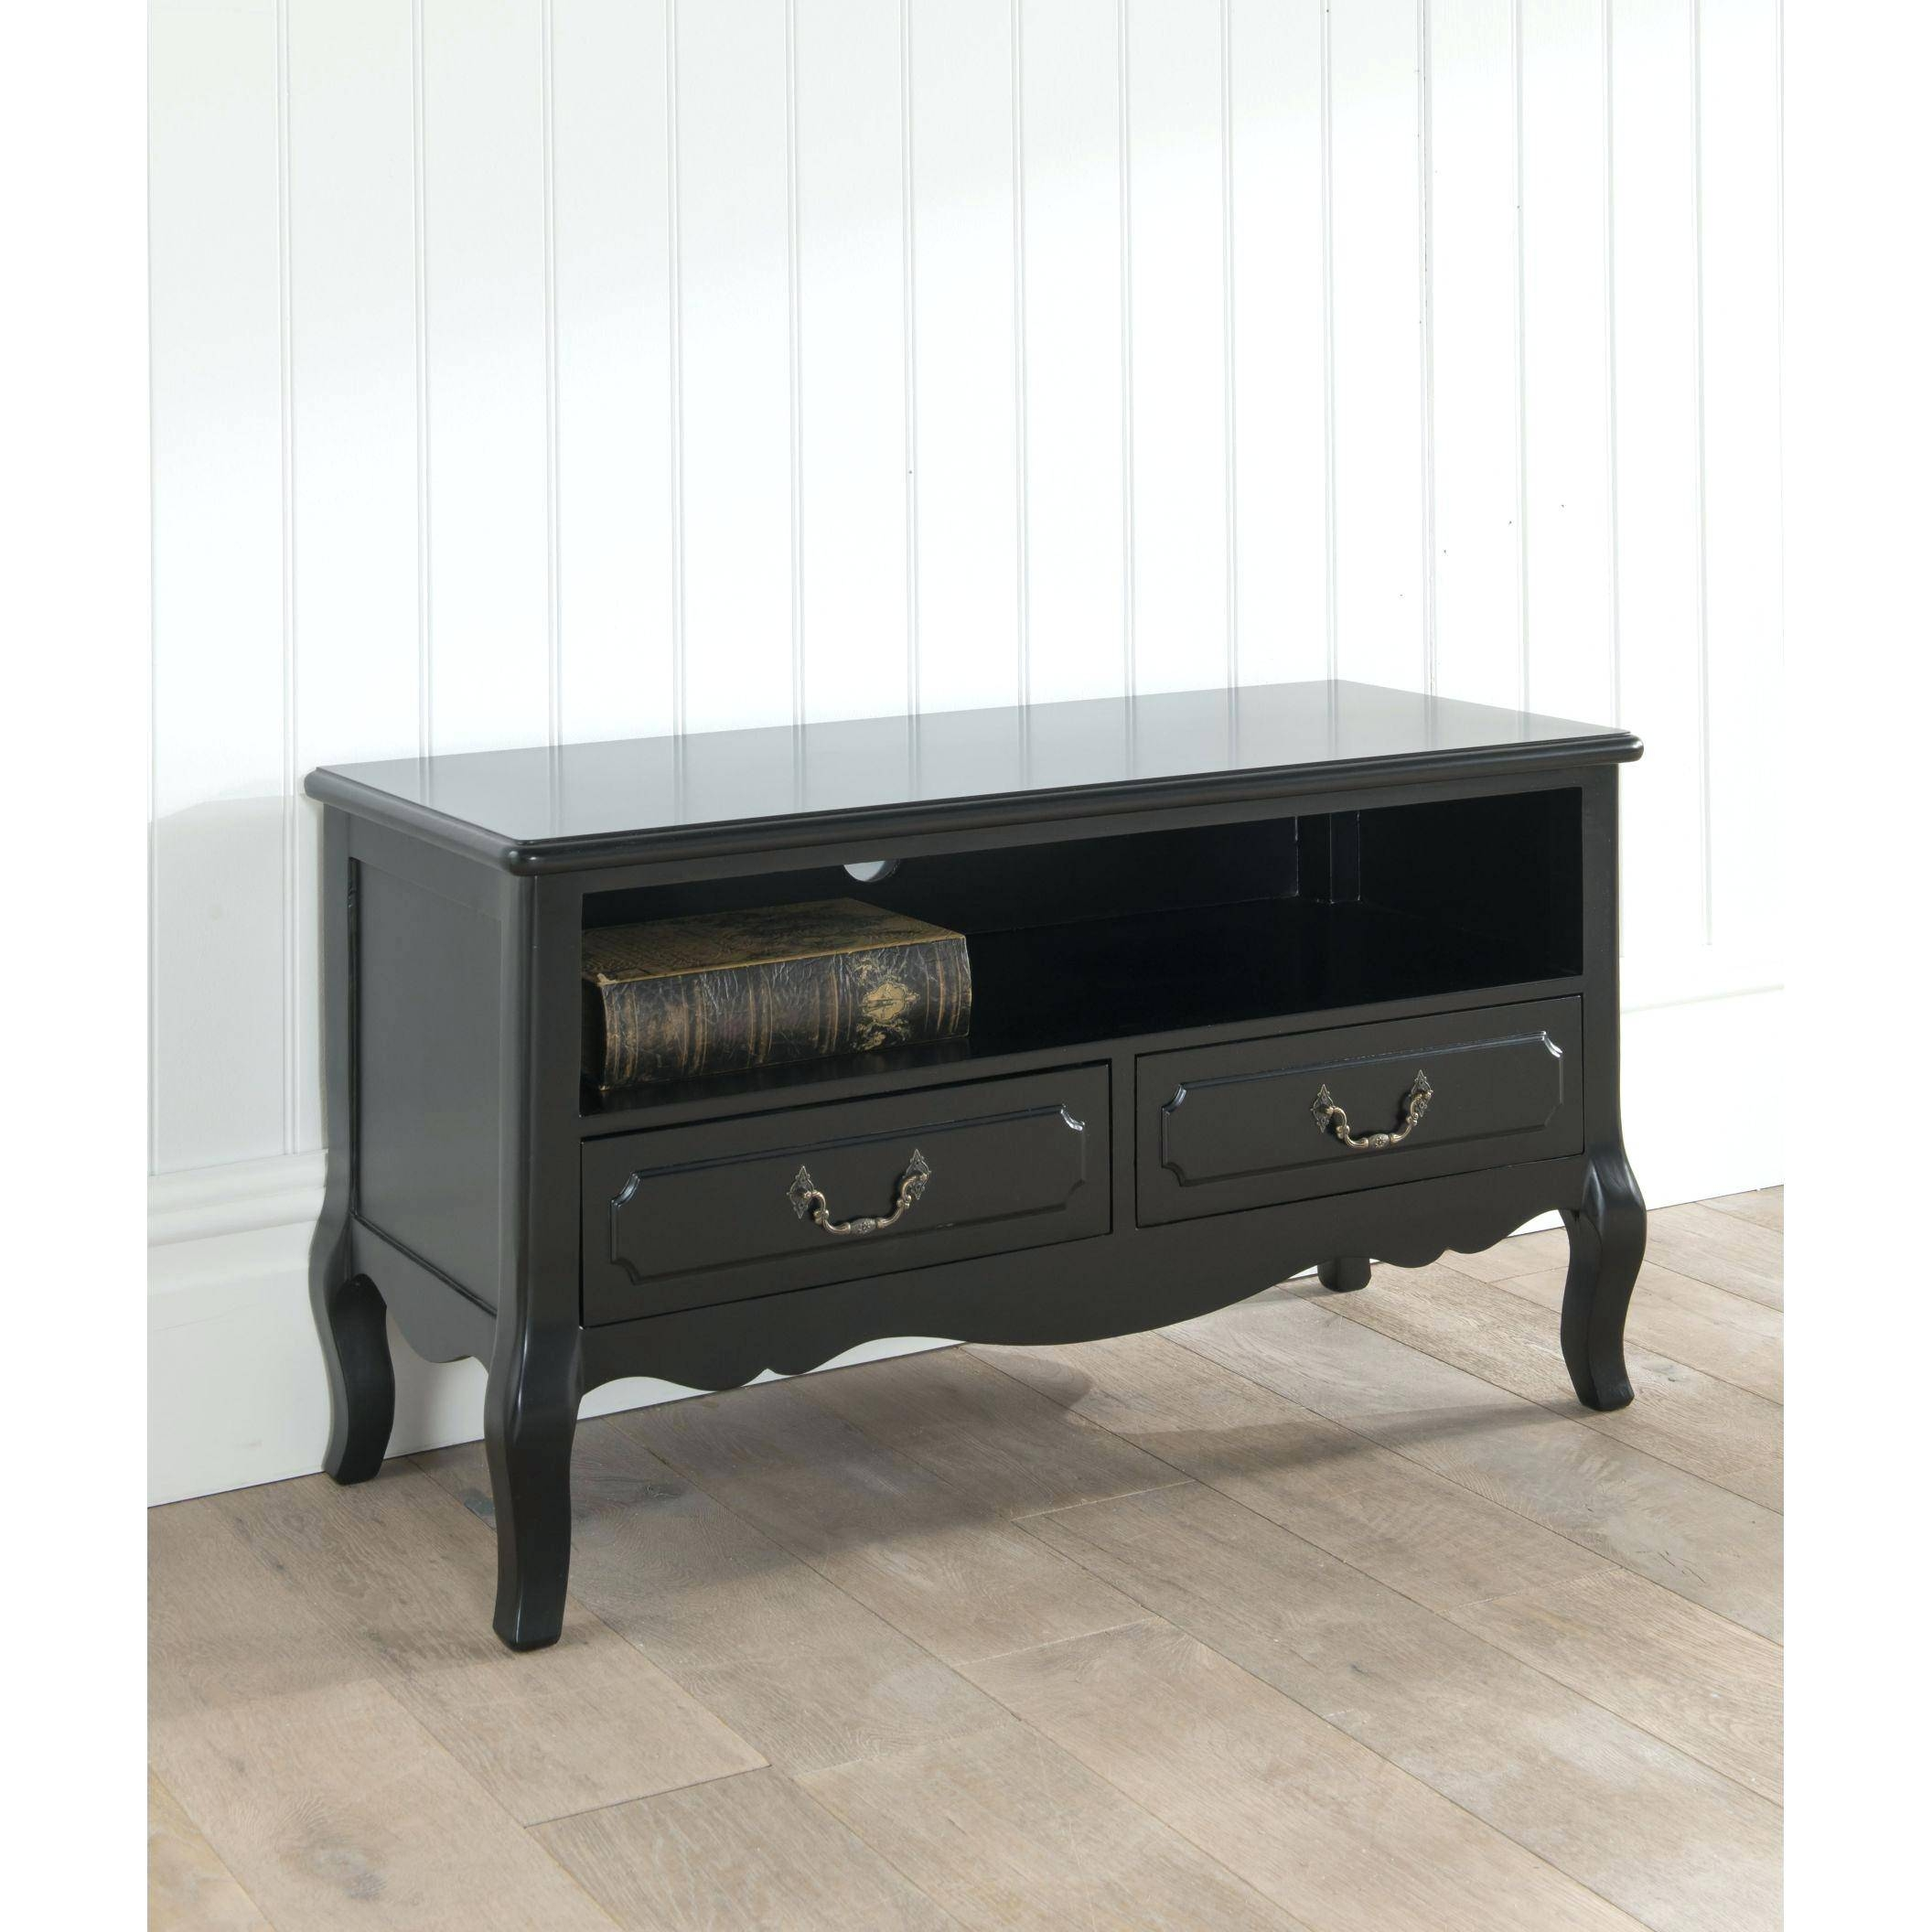 Tv Stand: Wondrous Antique Looking Tv Stand Images. Vintage Intended For Vintage  Style Tv